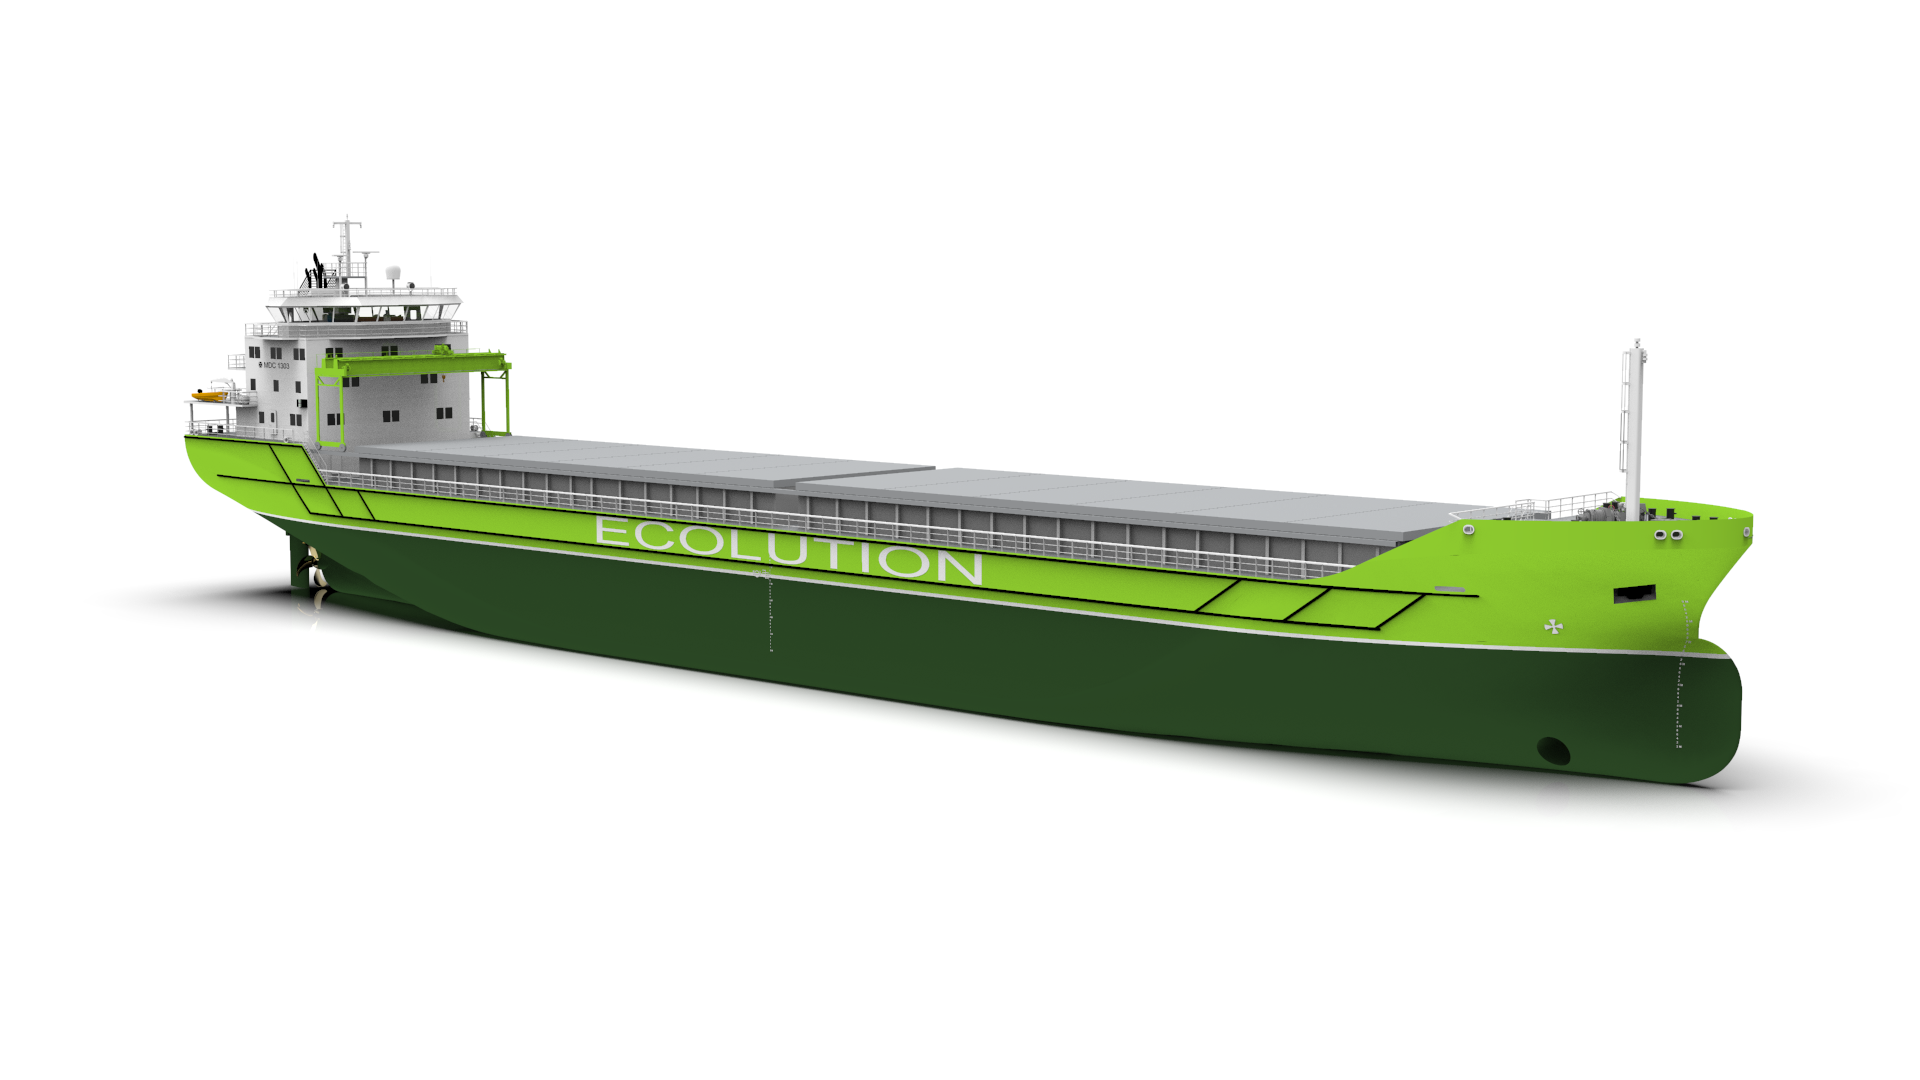 MDC 1303 ECOLUTION type General Cargo Carrier, 8000 dwt - Contracted